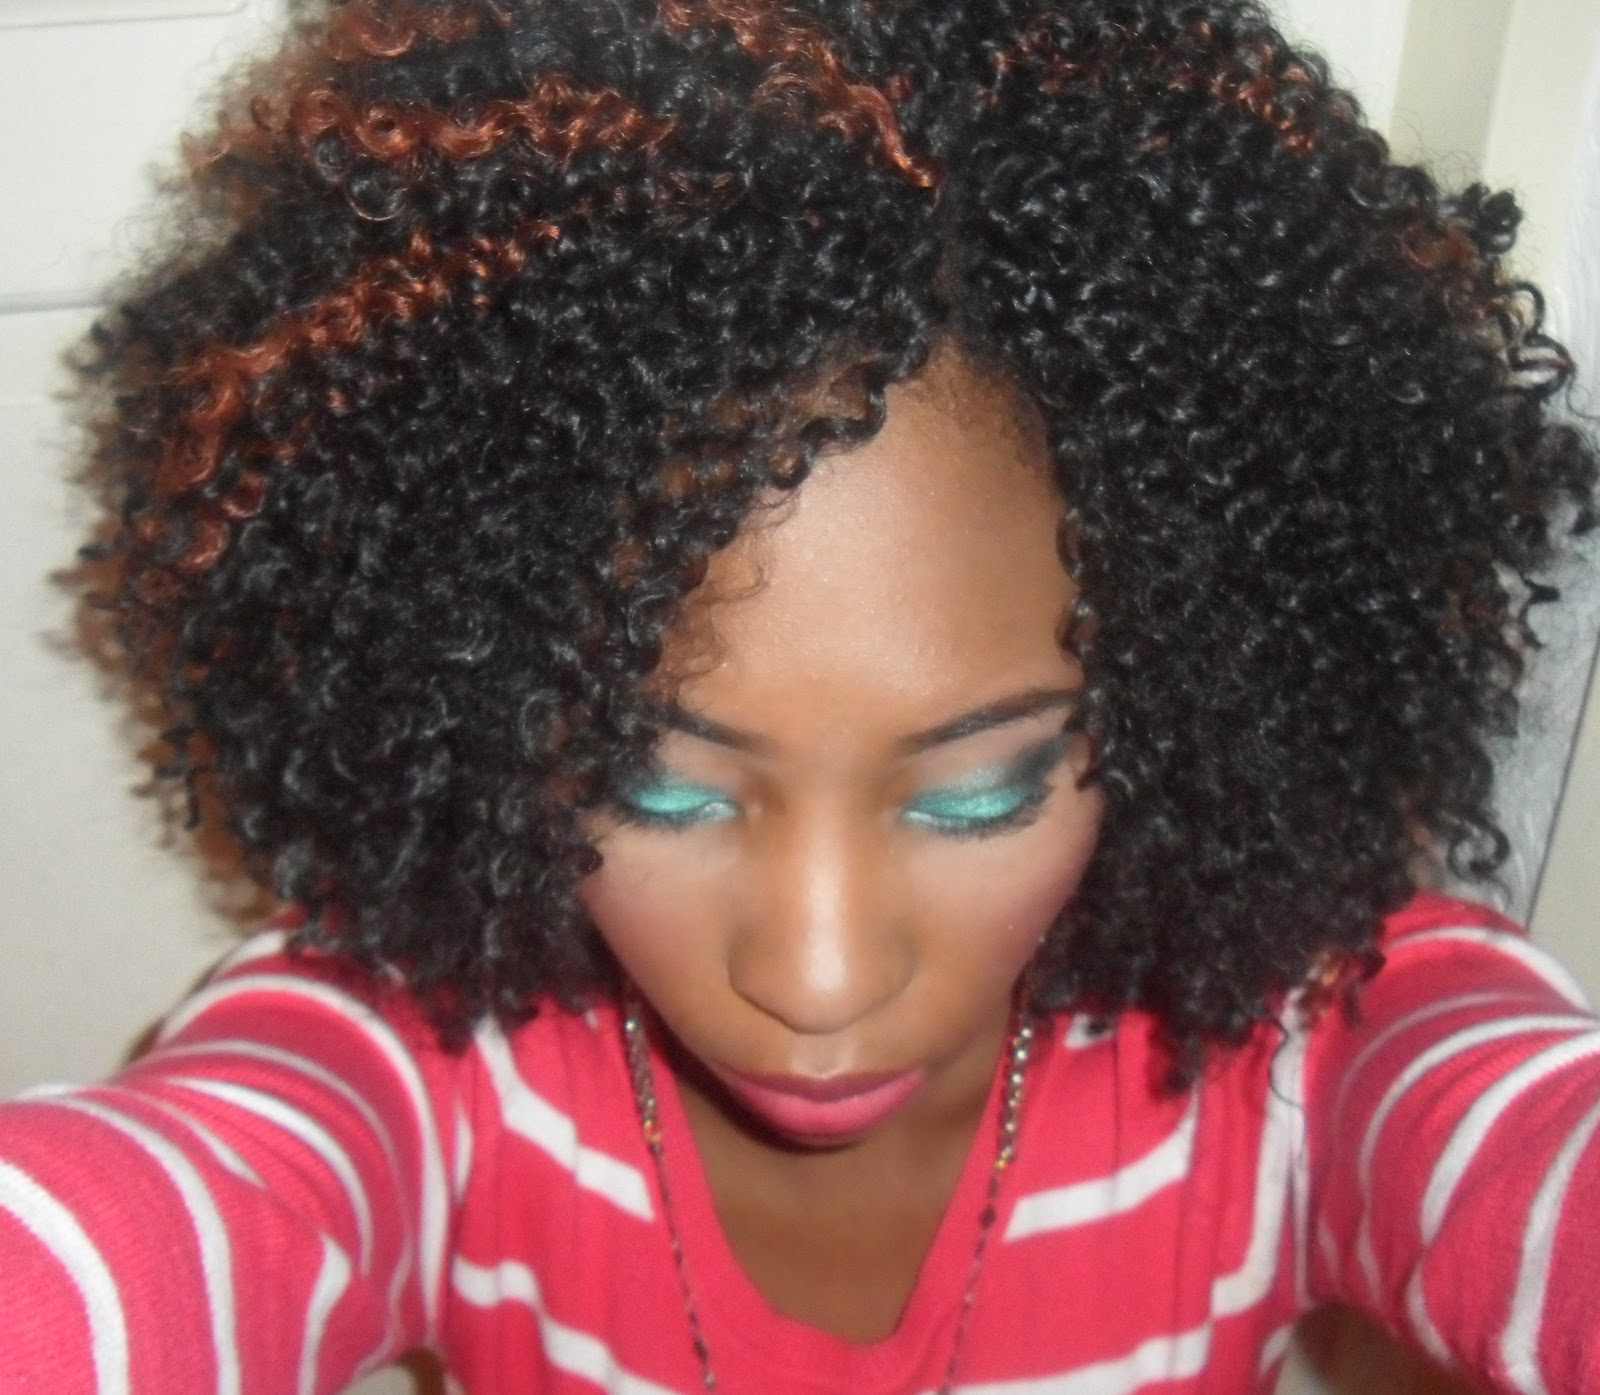 Crocheting Natural Hair : Any questions, e-mail me at nubianpride@live.co.uk / tweet me @Ray ...